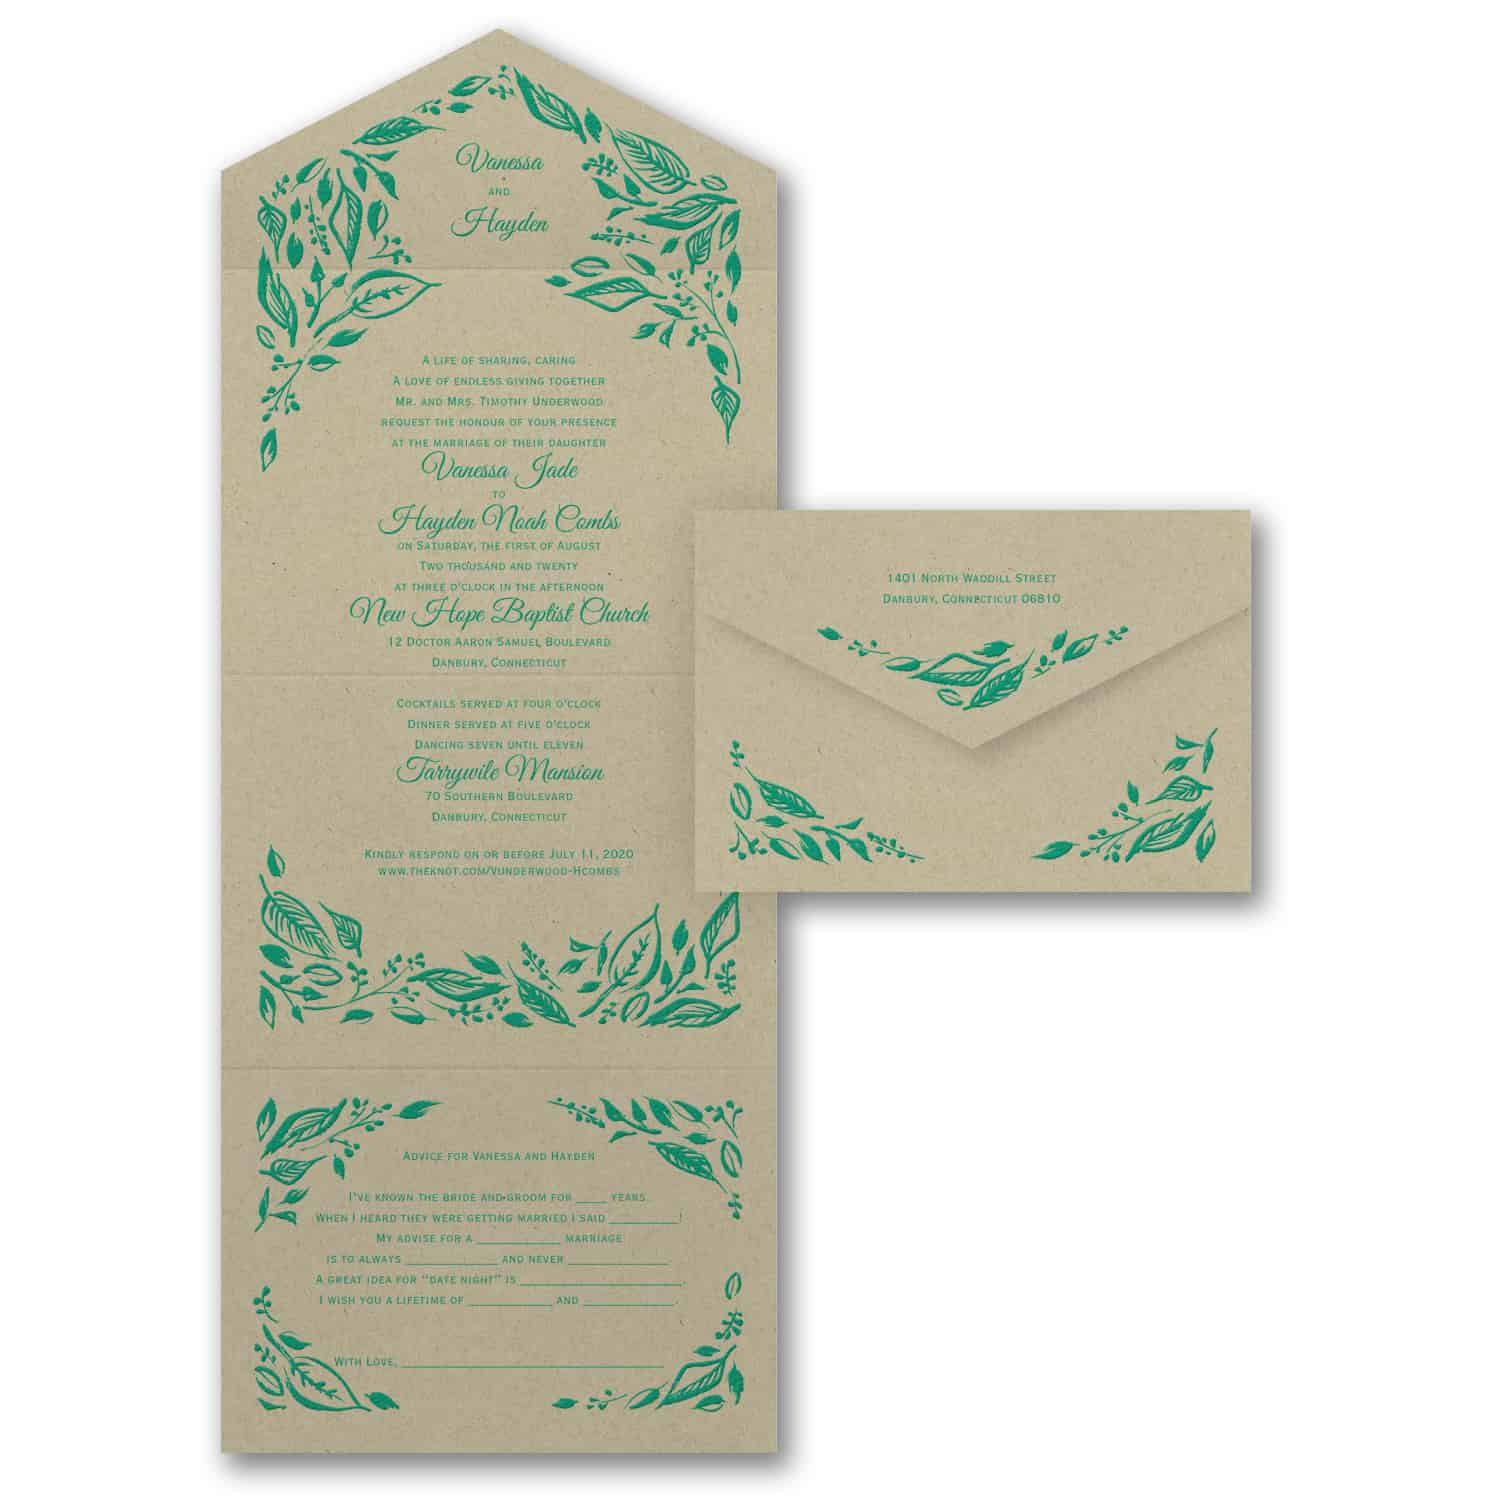 All In One Wedding Invitations, Seal And